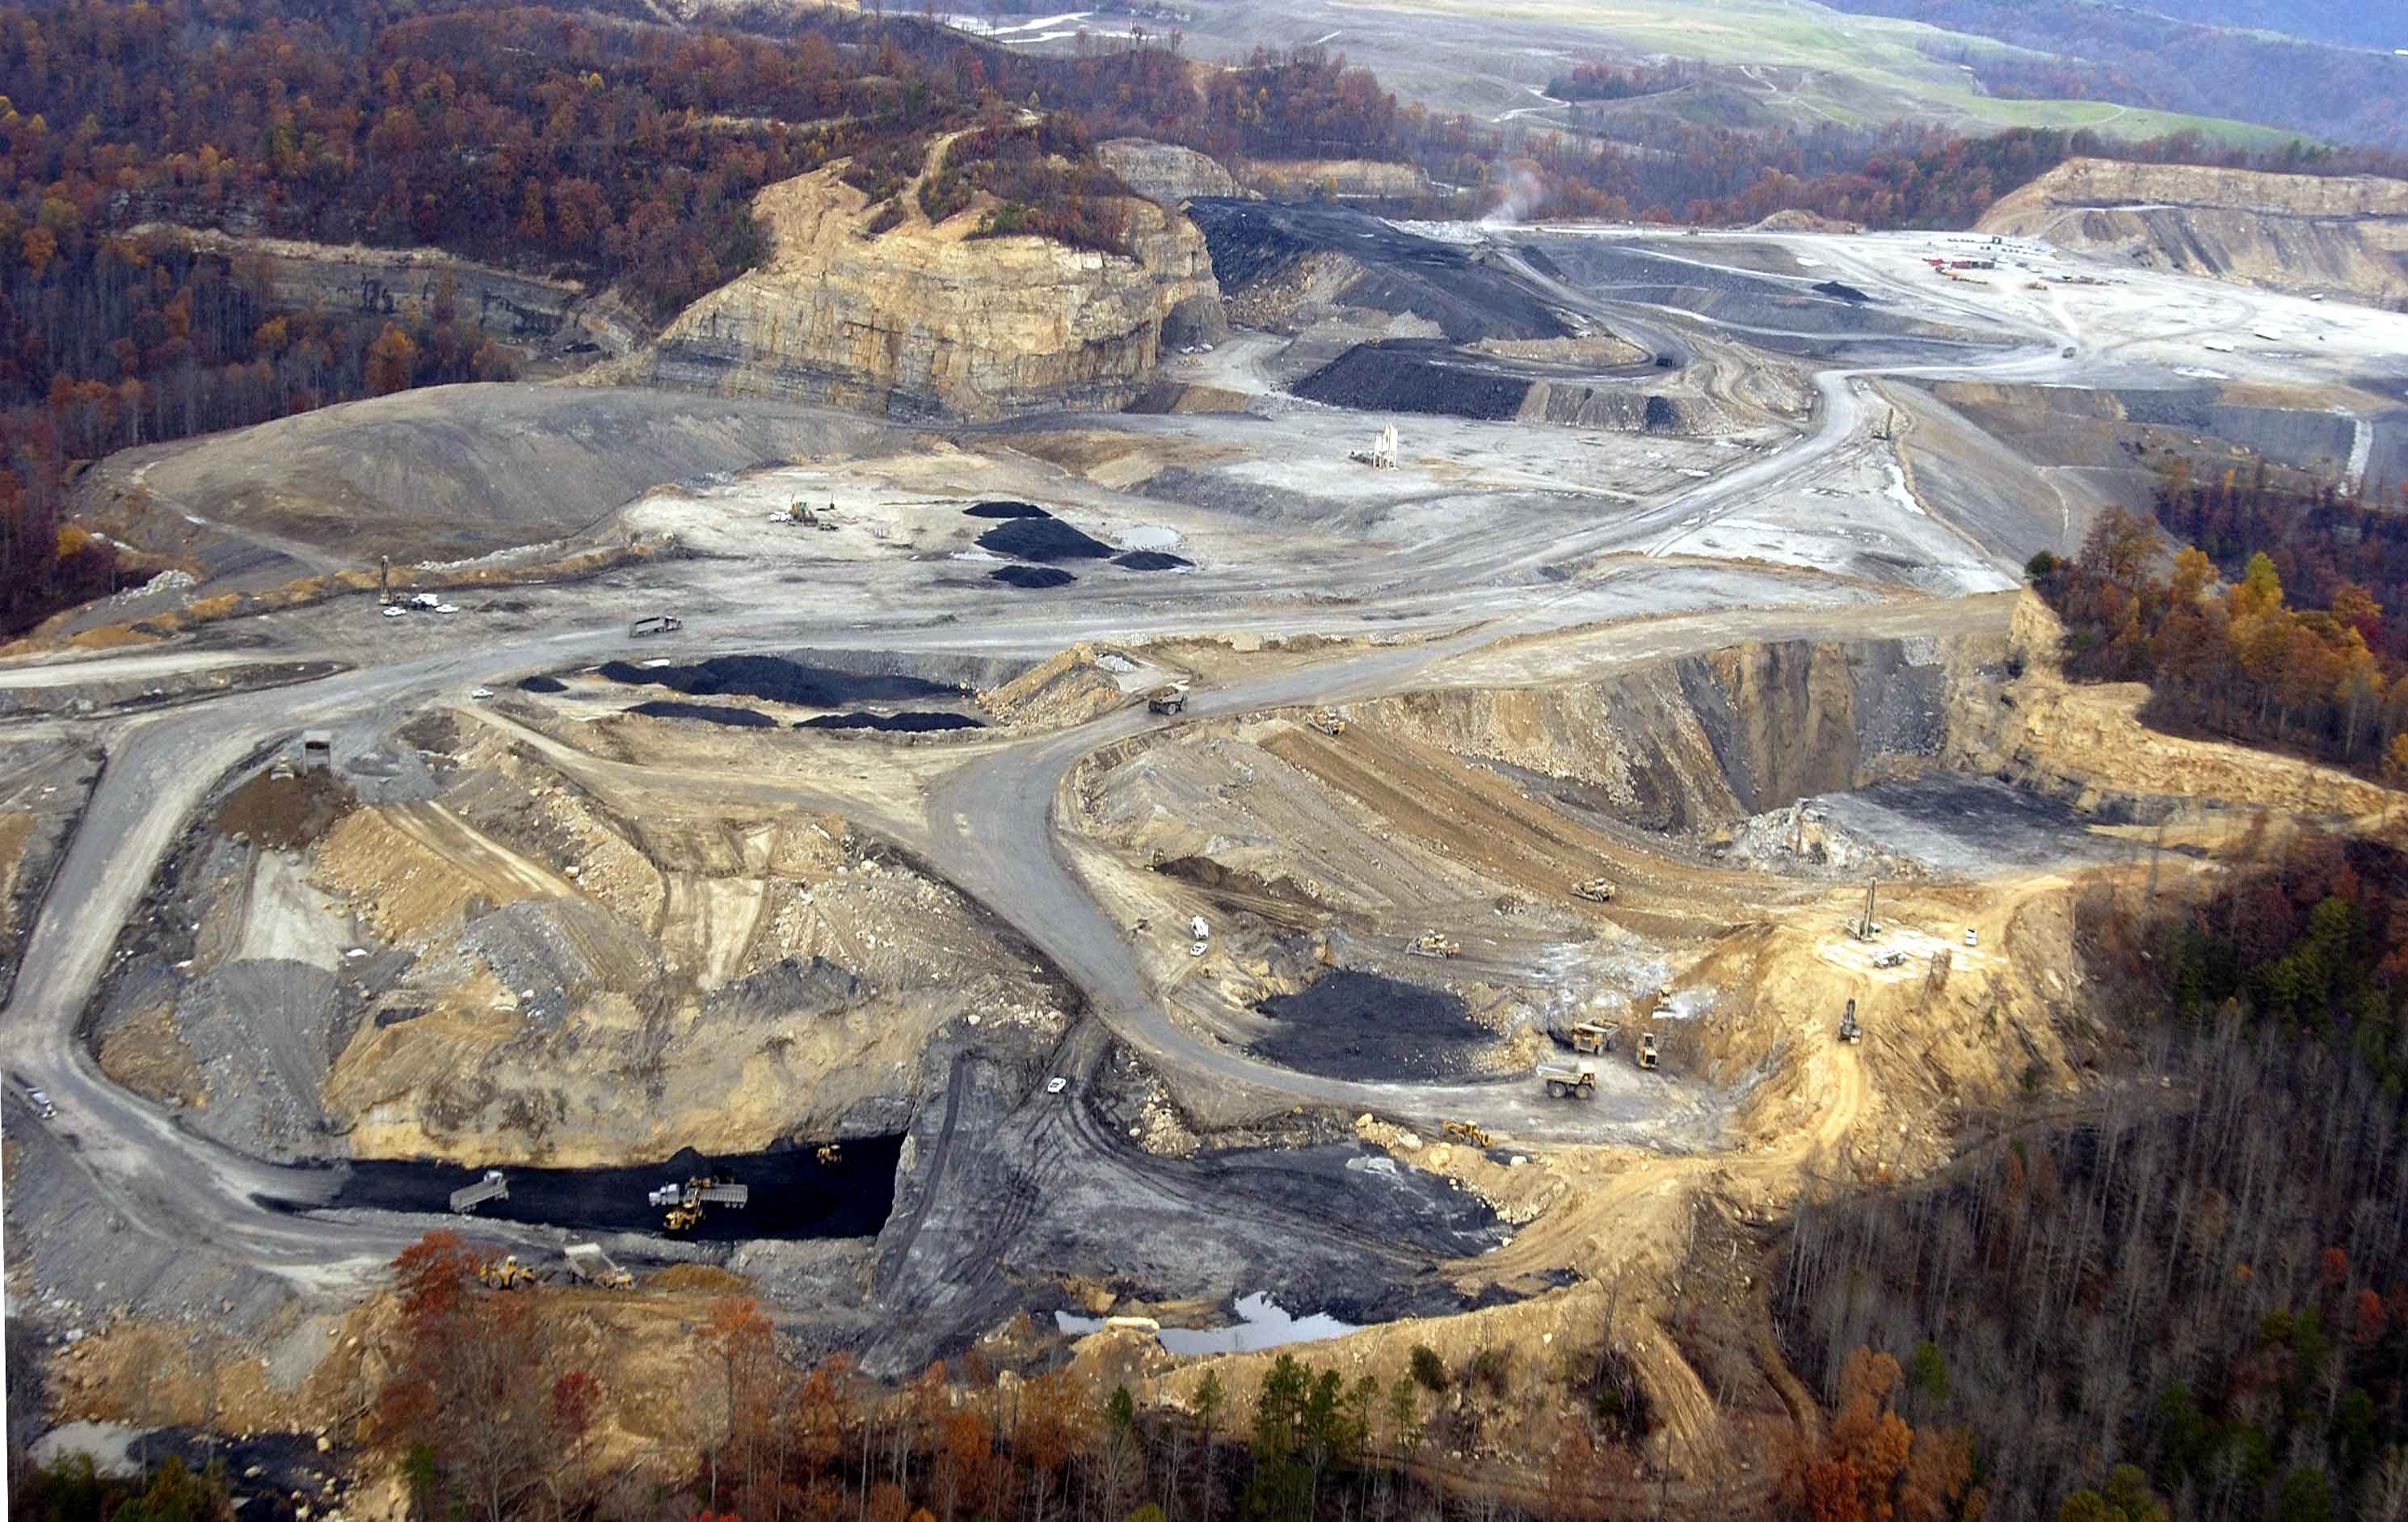 Appalachia Mountaintop Removal Mining